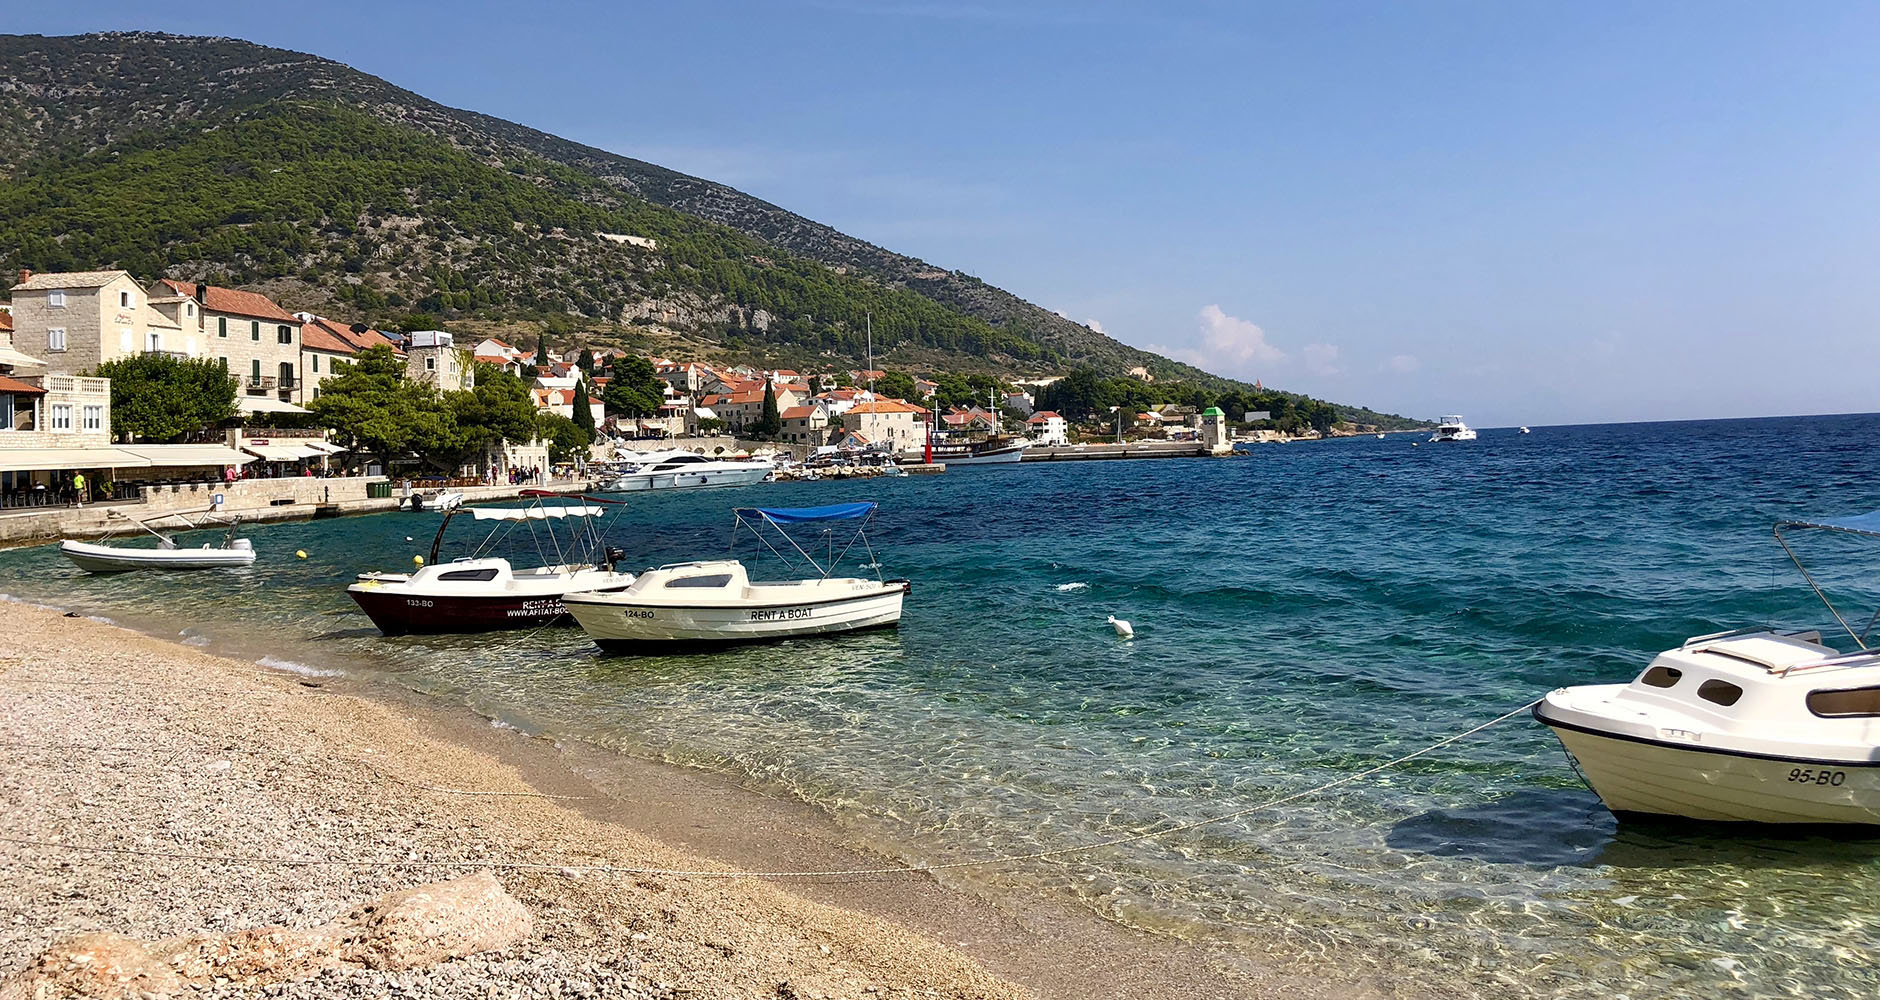 Arriving at the port in Bol, Brac